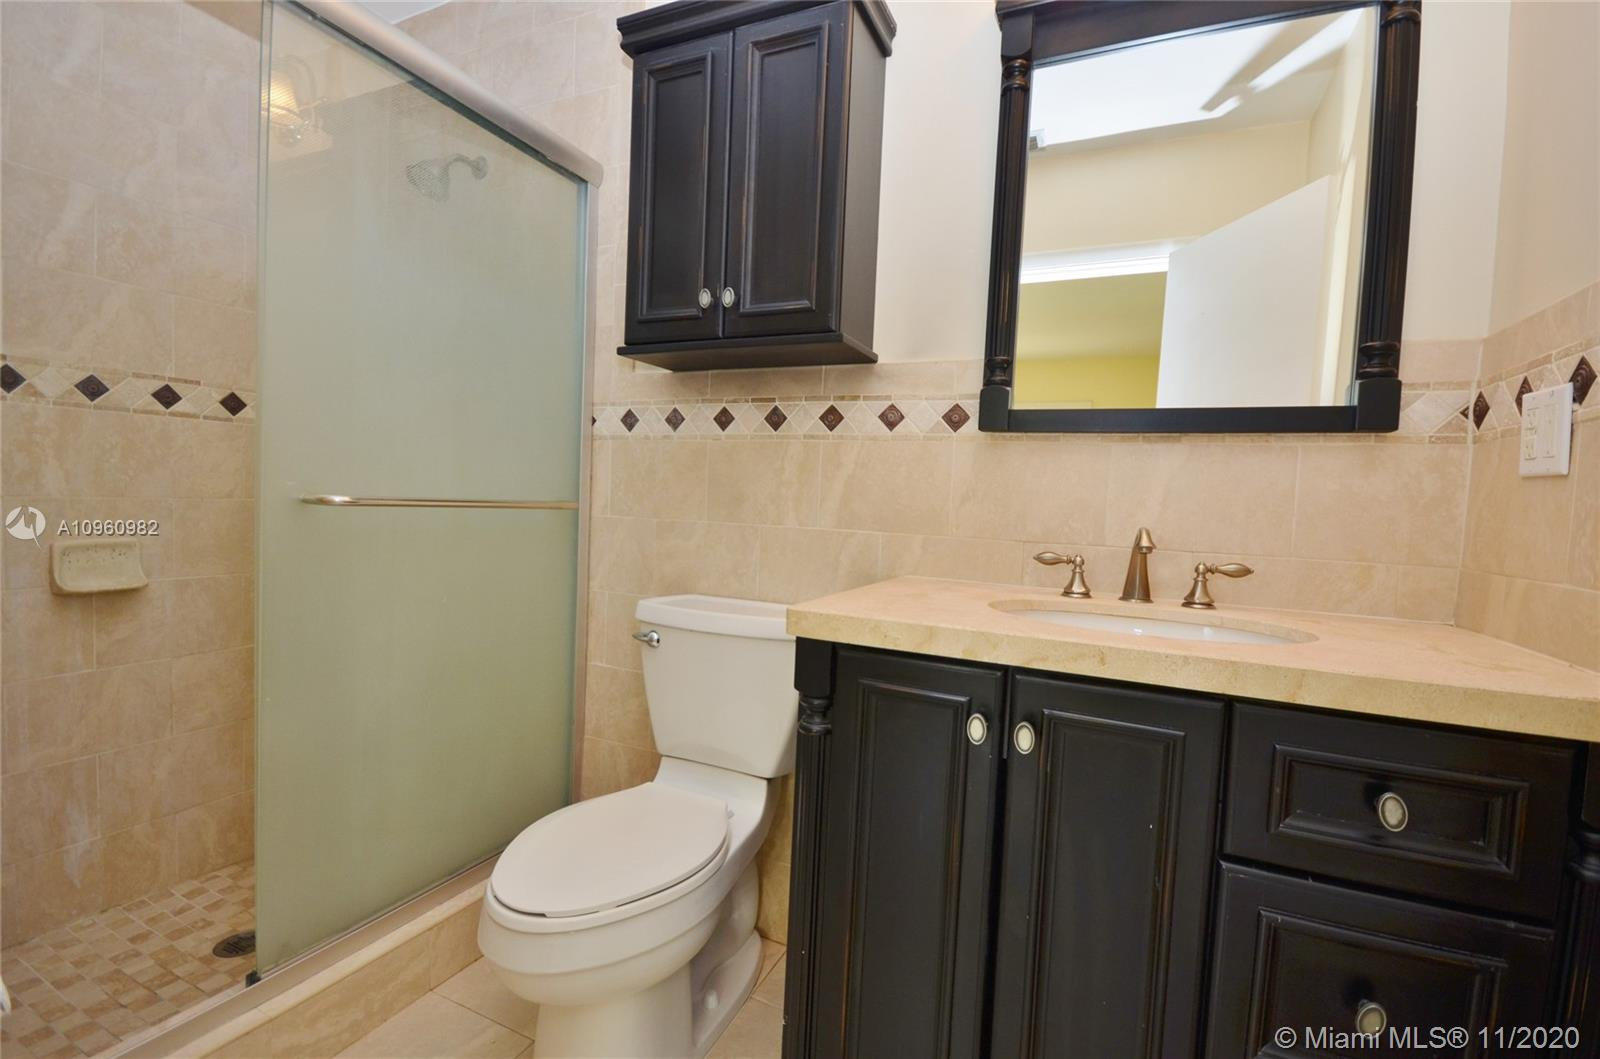 14831 Palmetto Palm Ave, Miami Lakes, Florida 33014, 3 Bedrooms Bedrooms, ,2 BathroomsBathrooms,Residential Lease,For Rent,14831 Palmetto Palm Ave,A10960982